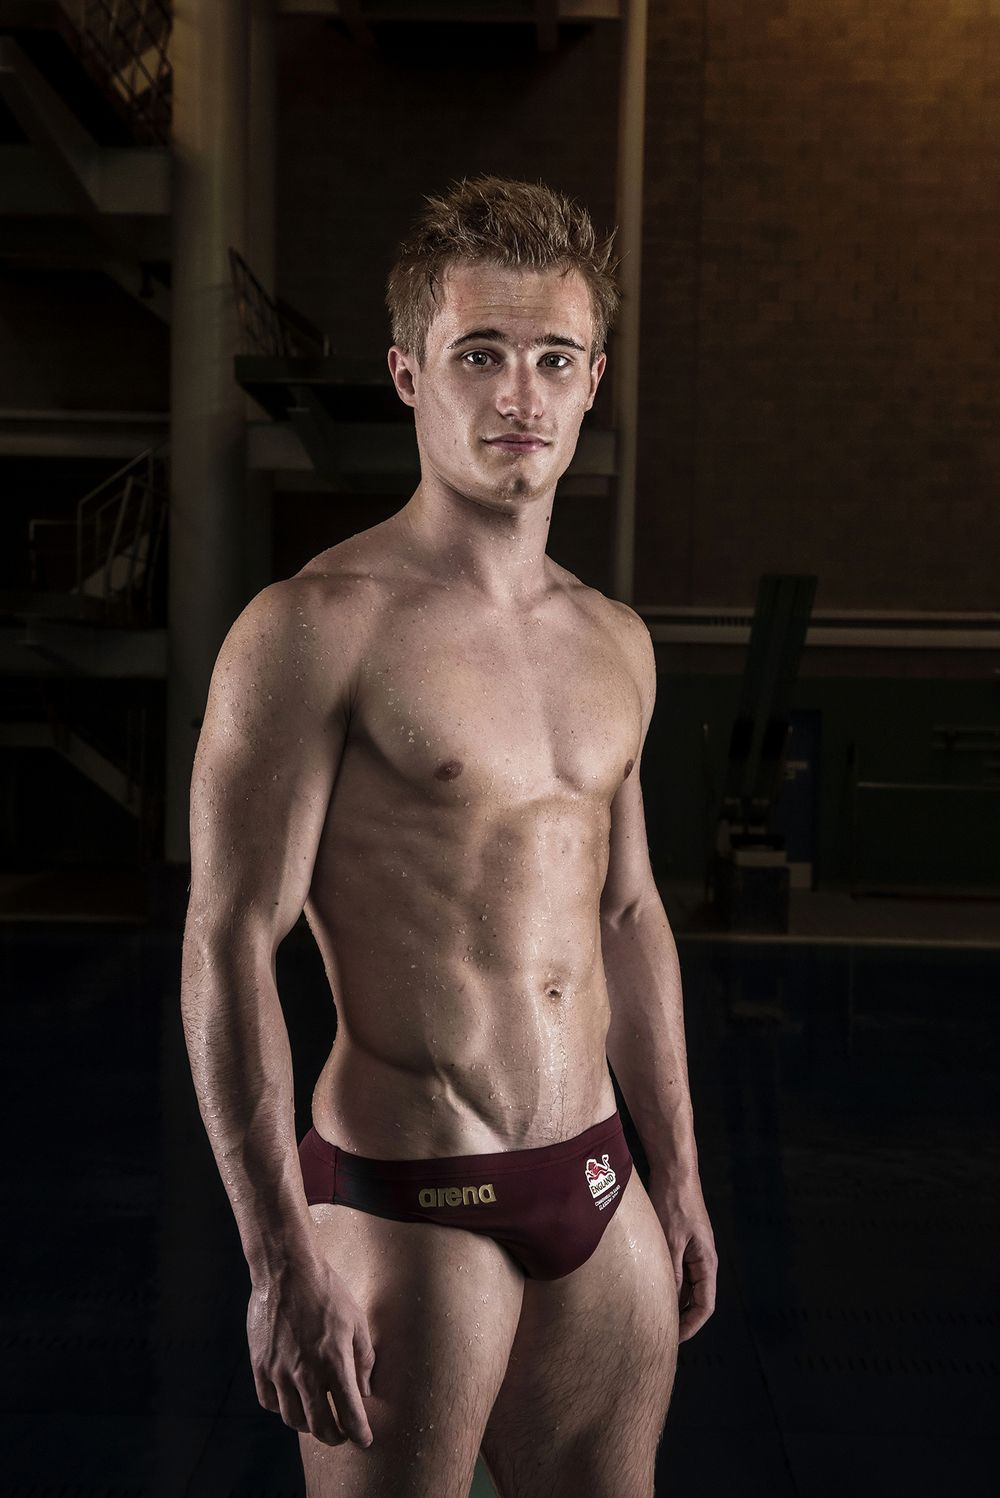 Wilcox young Chris men fit gym